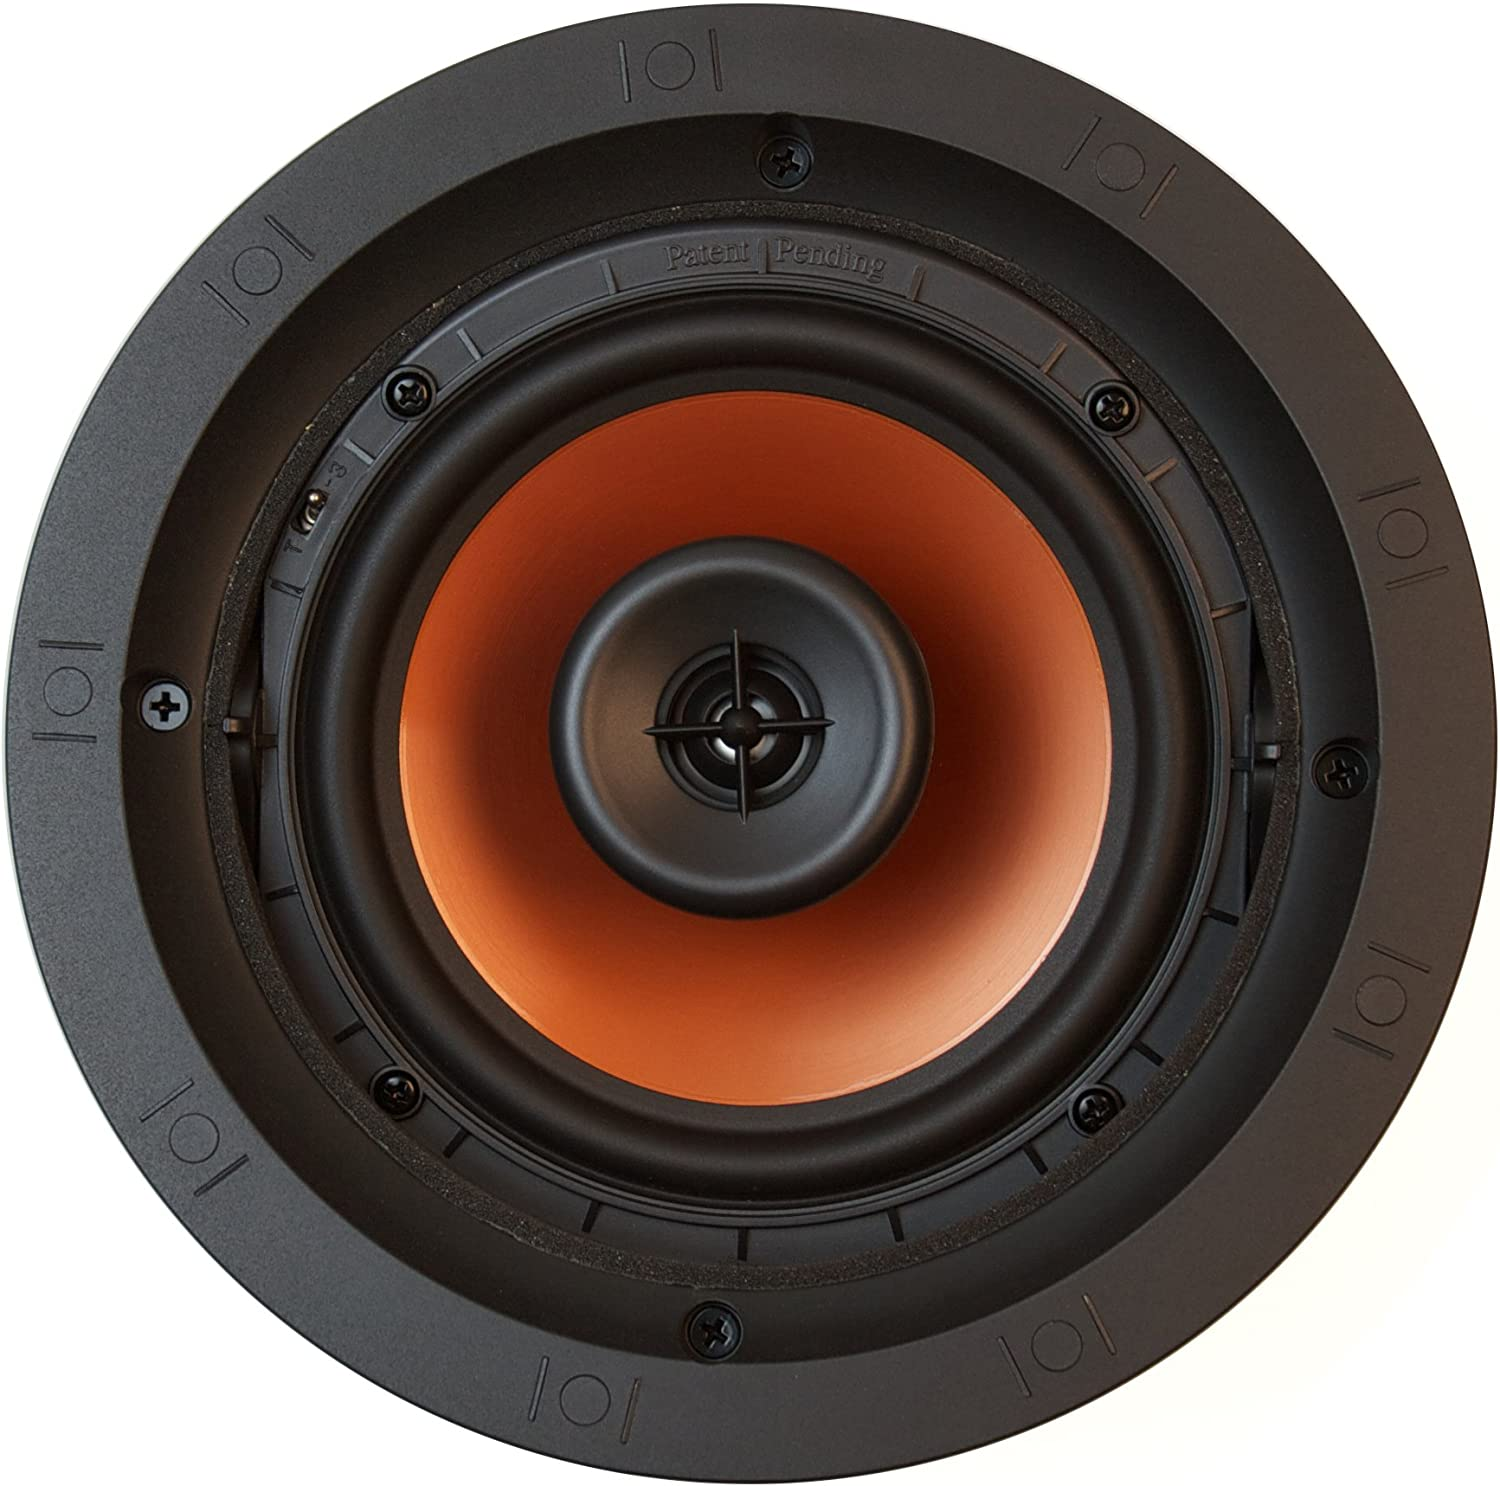 Klipsch CDT-3650-C II In-Ceiling Speaker - White (Each)